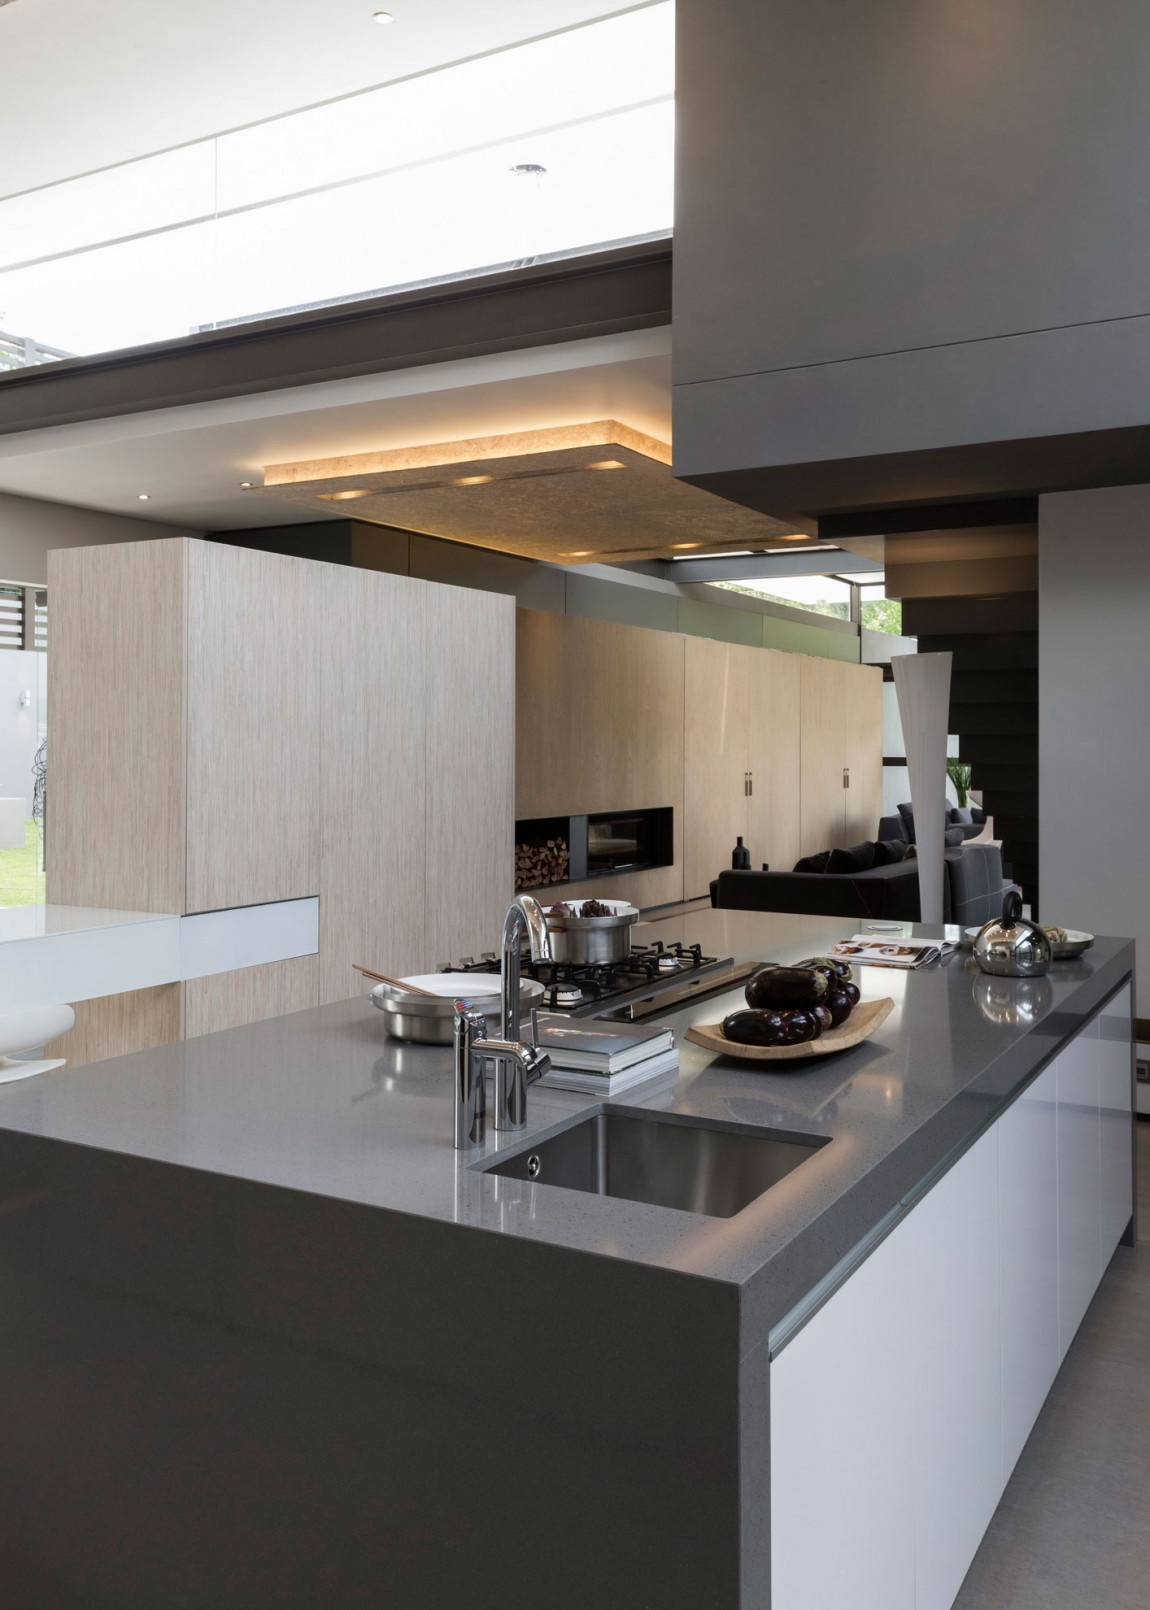 Modern kitchen island in House Sar by Nico van der Meulen Architects